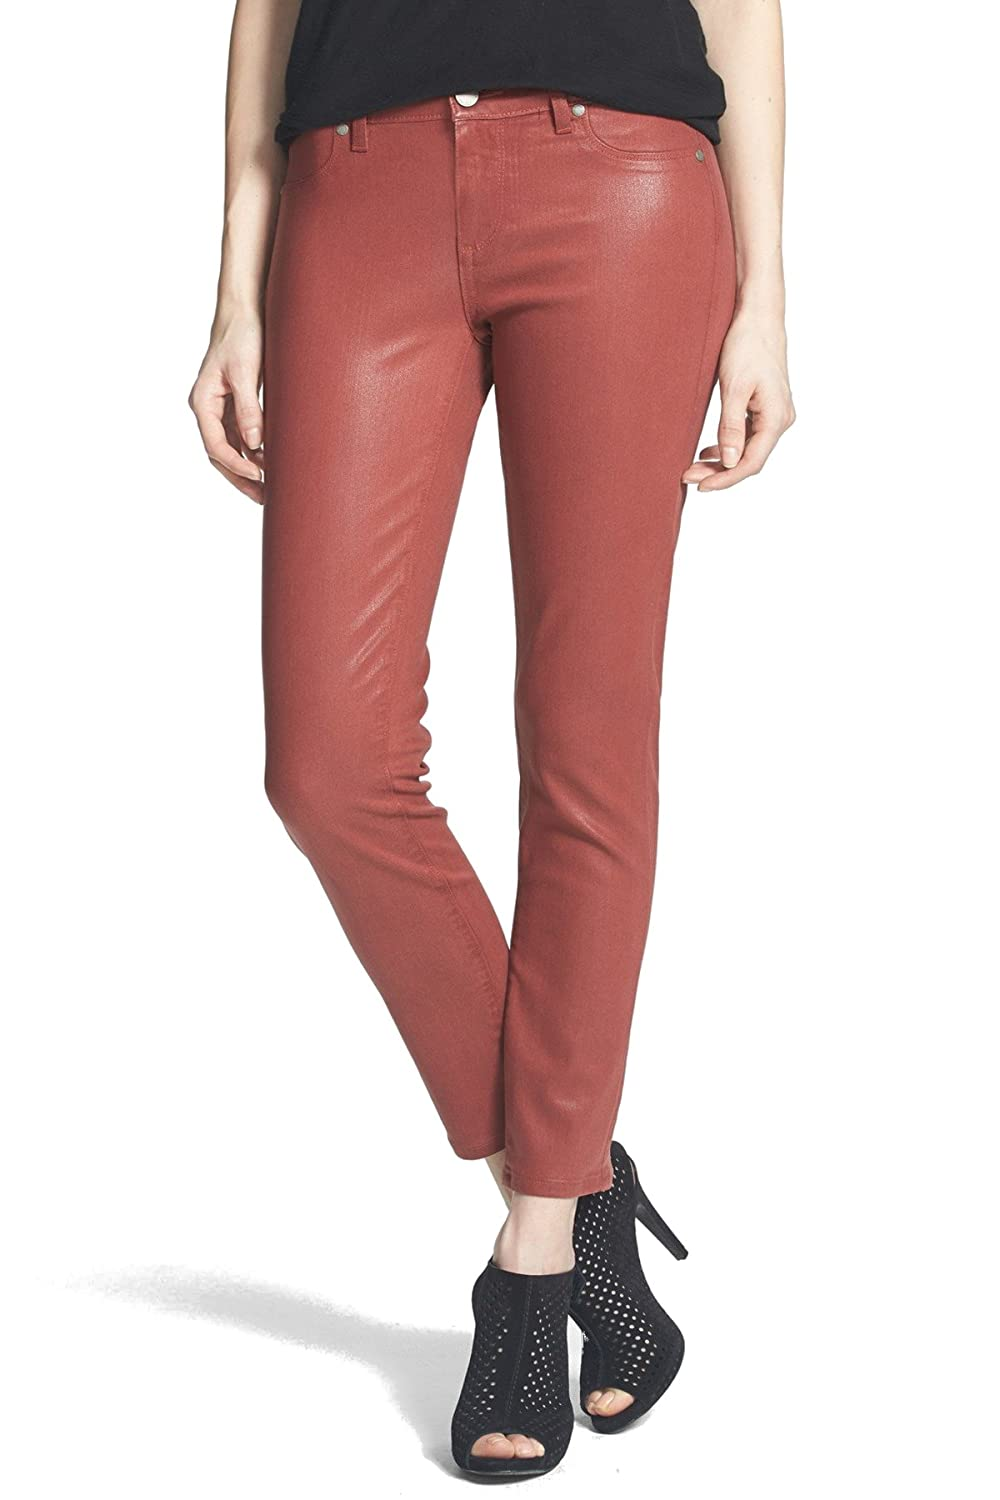 Paige Women's Verdugo Crop in Redwood Silk Coating Redwood Silk Coating 25 26